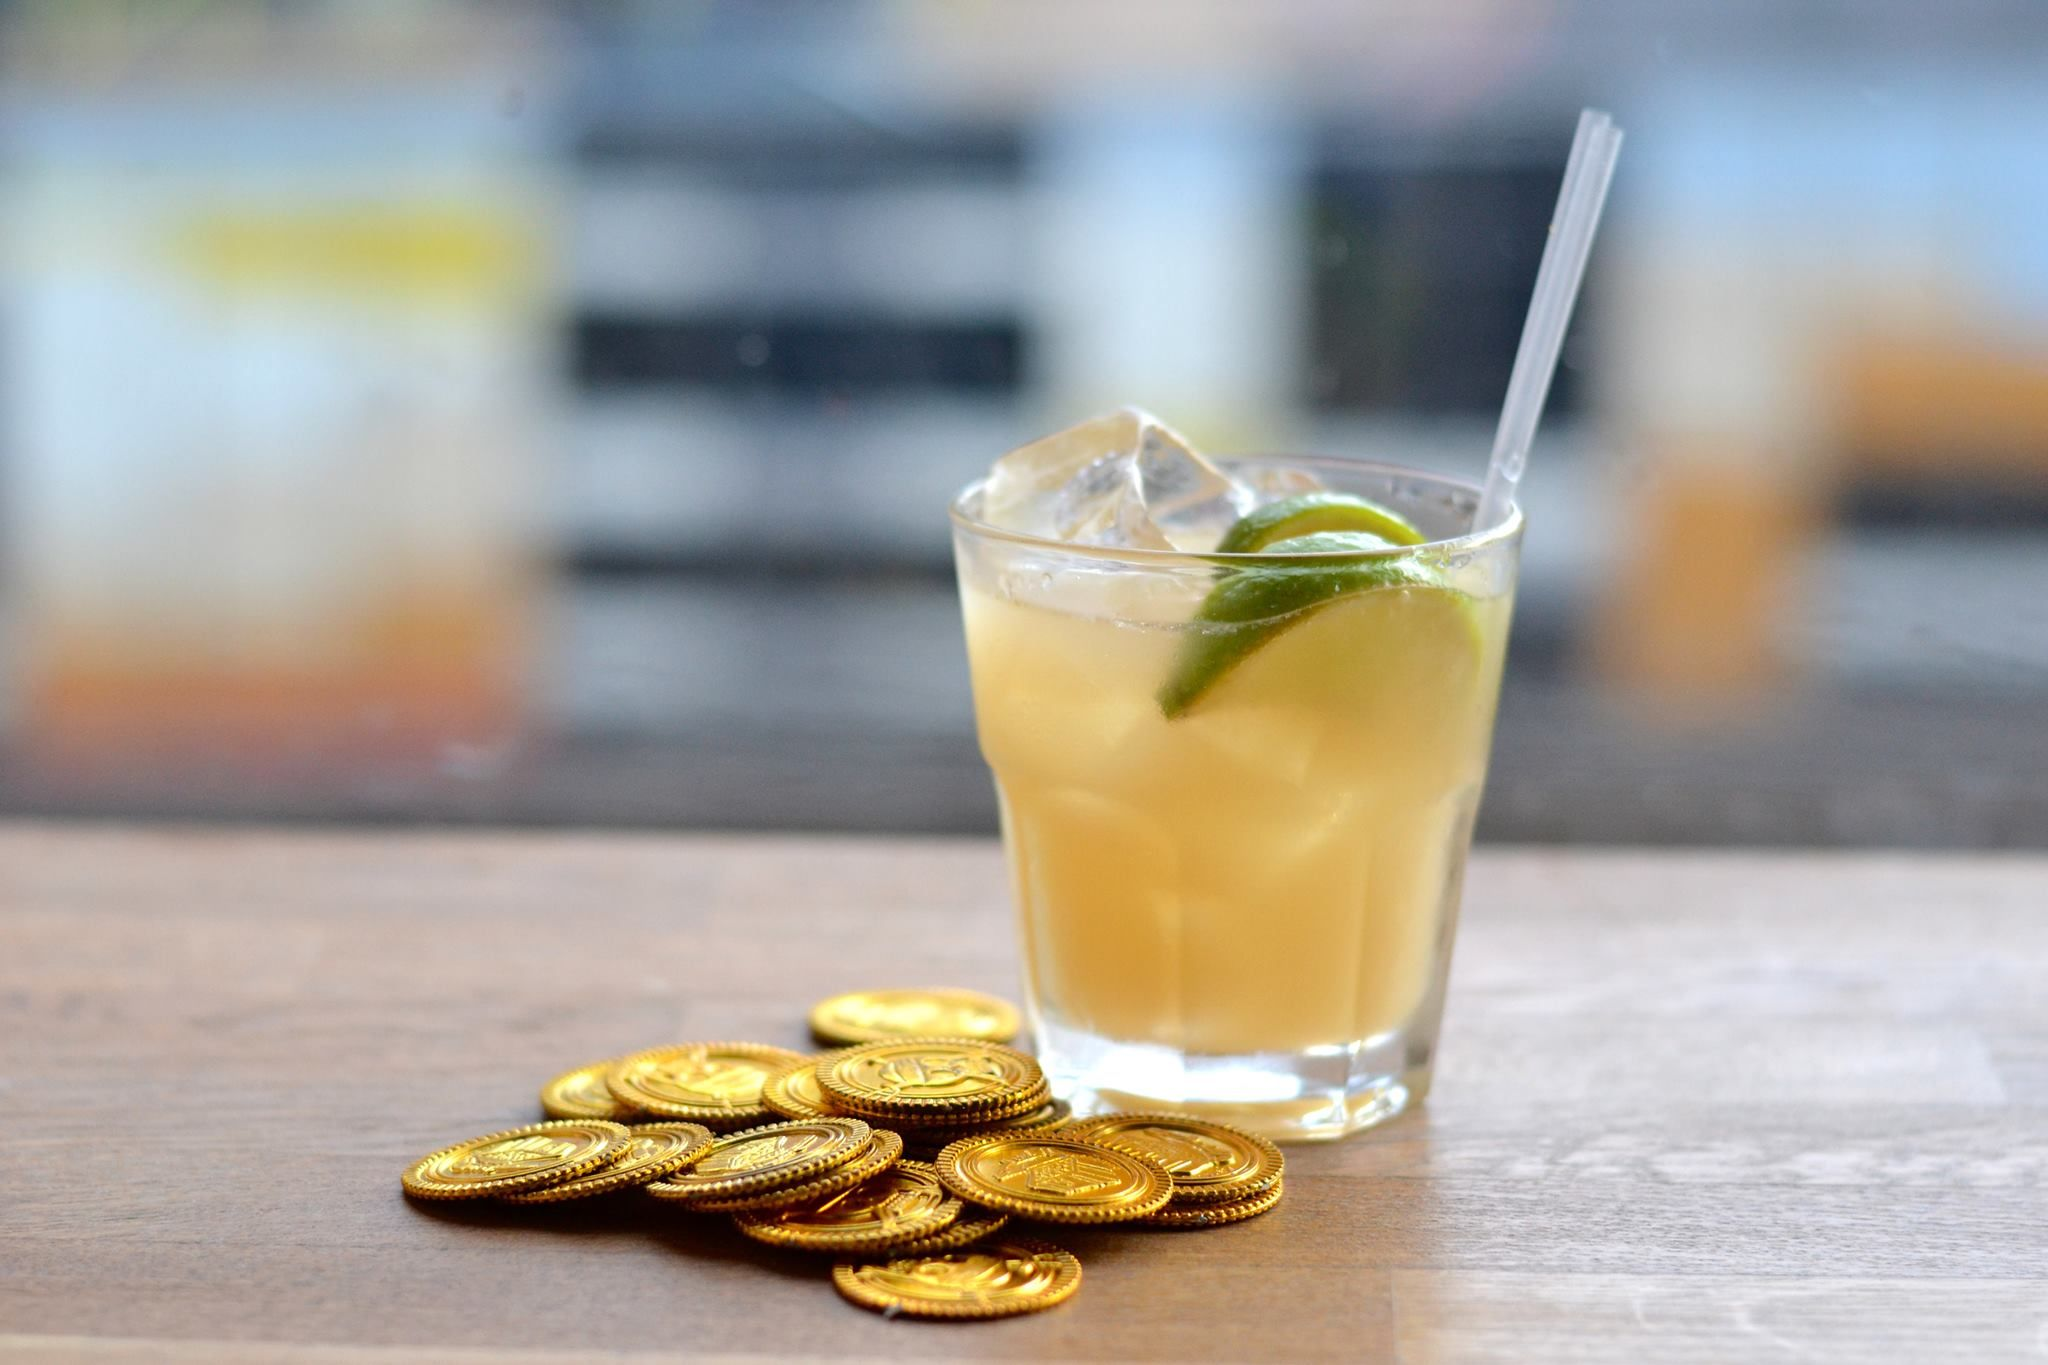 Spiced Mai Tai; Brugal Dry Spiced Rum shaken with Brugal Anejo, almond, lime and orange.  Crisp, short and refreshing.